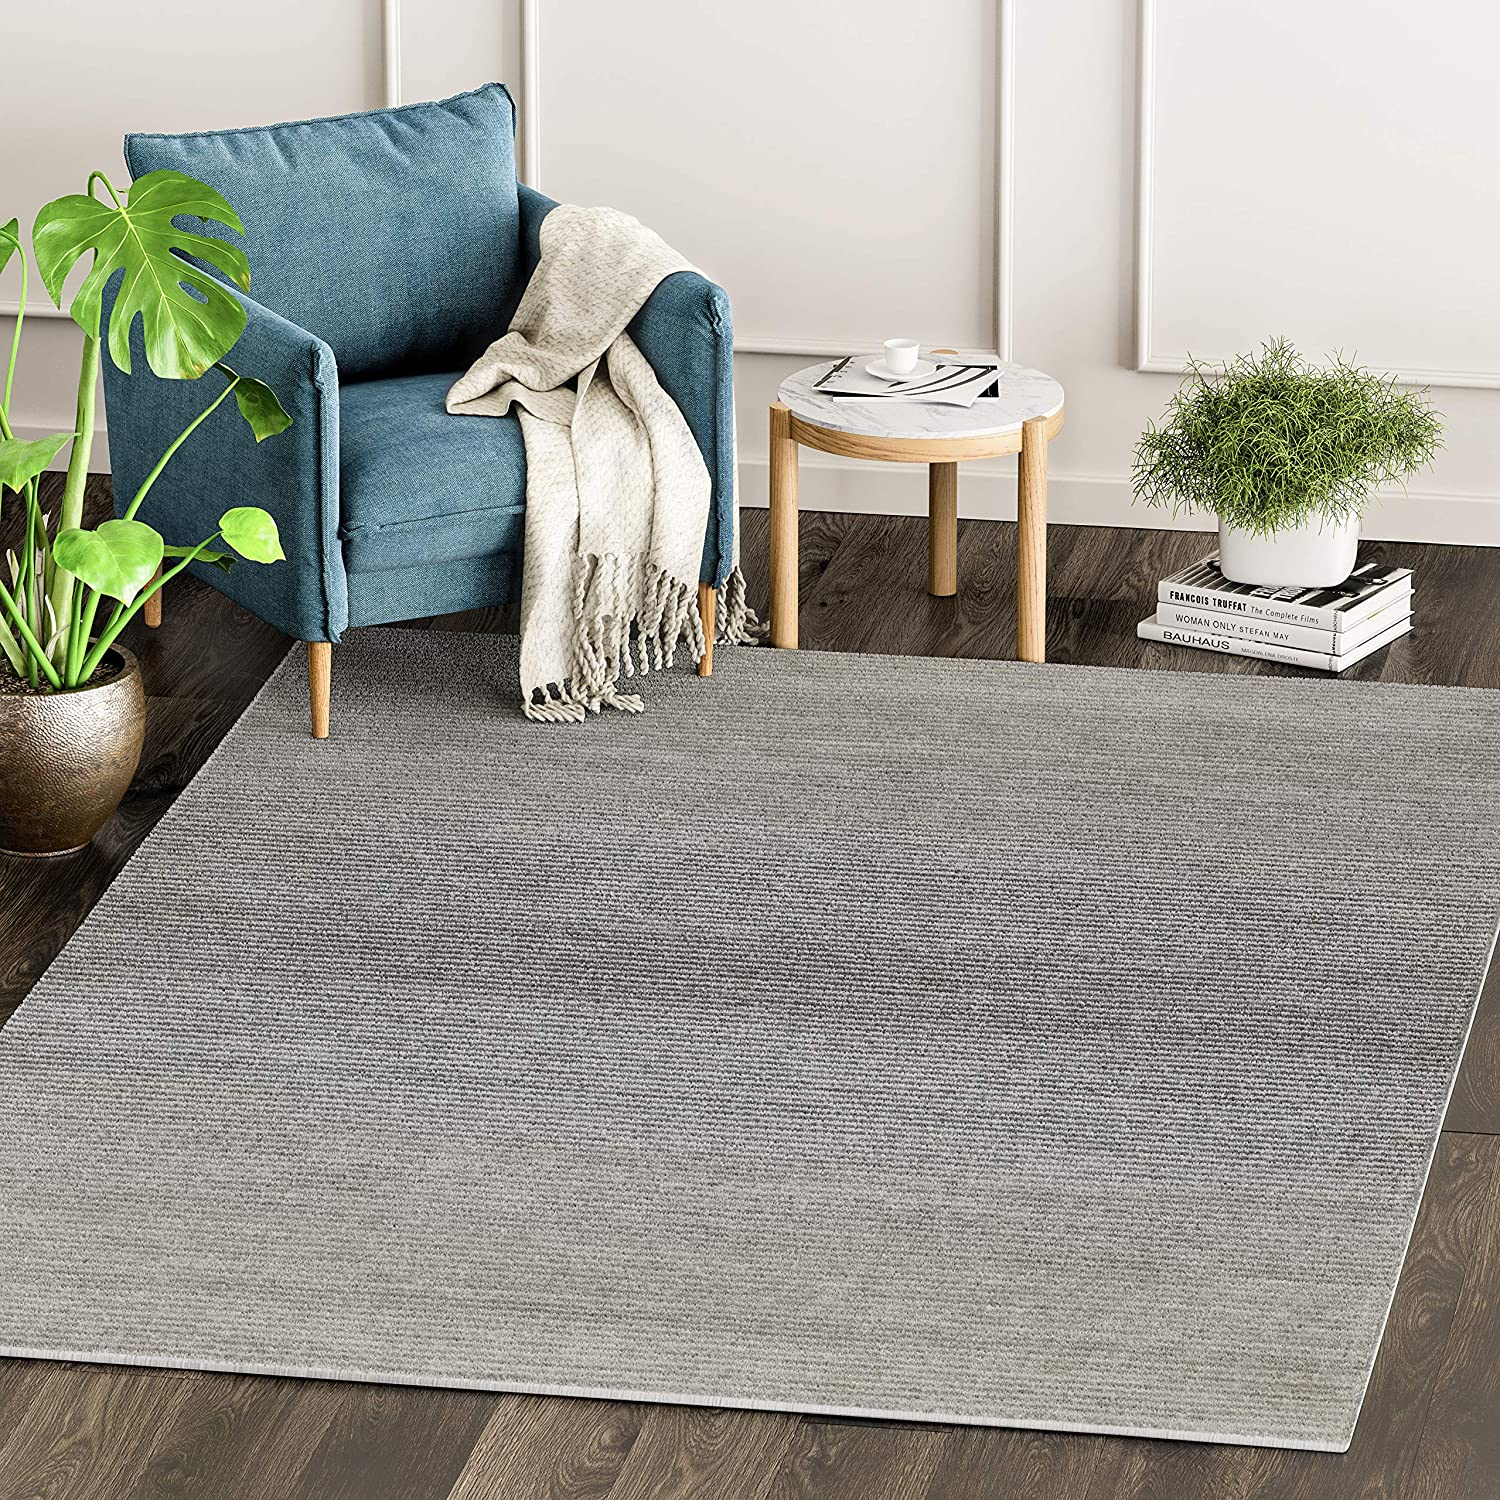 Amazon Com Abani Rugs Grey Minimalist Striped Area Rug Rustic Rugged Contemporary Modern Style Accent Vista Collection Turkish Made Superior Comfort Construction Stain Shed Resistant 5 X 7 Feet Kitchen Dining